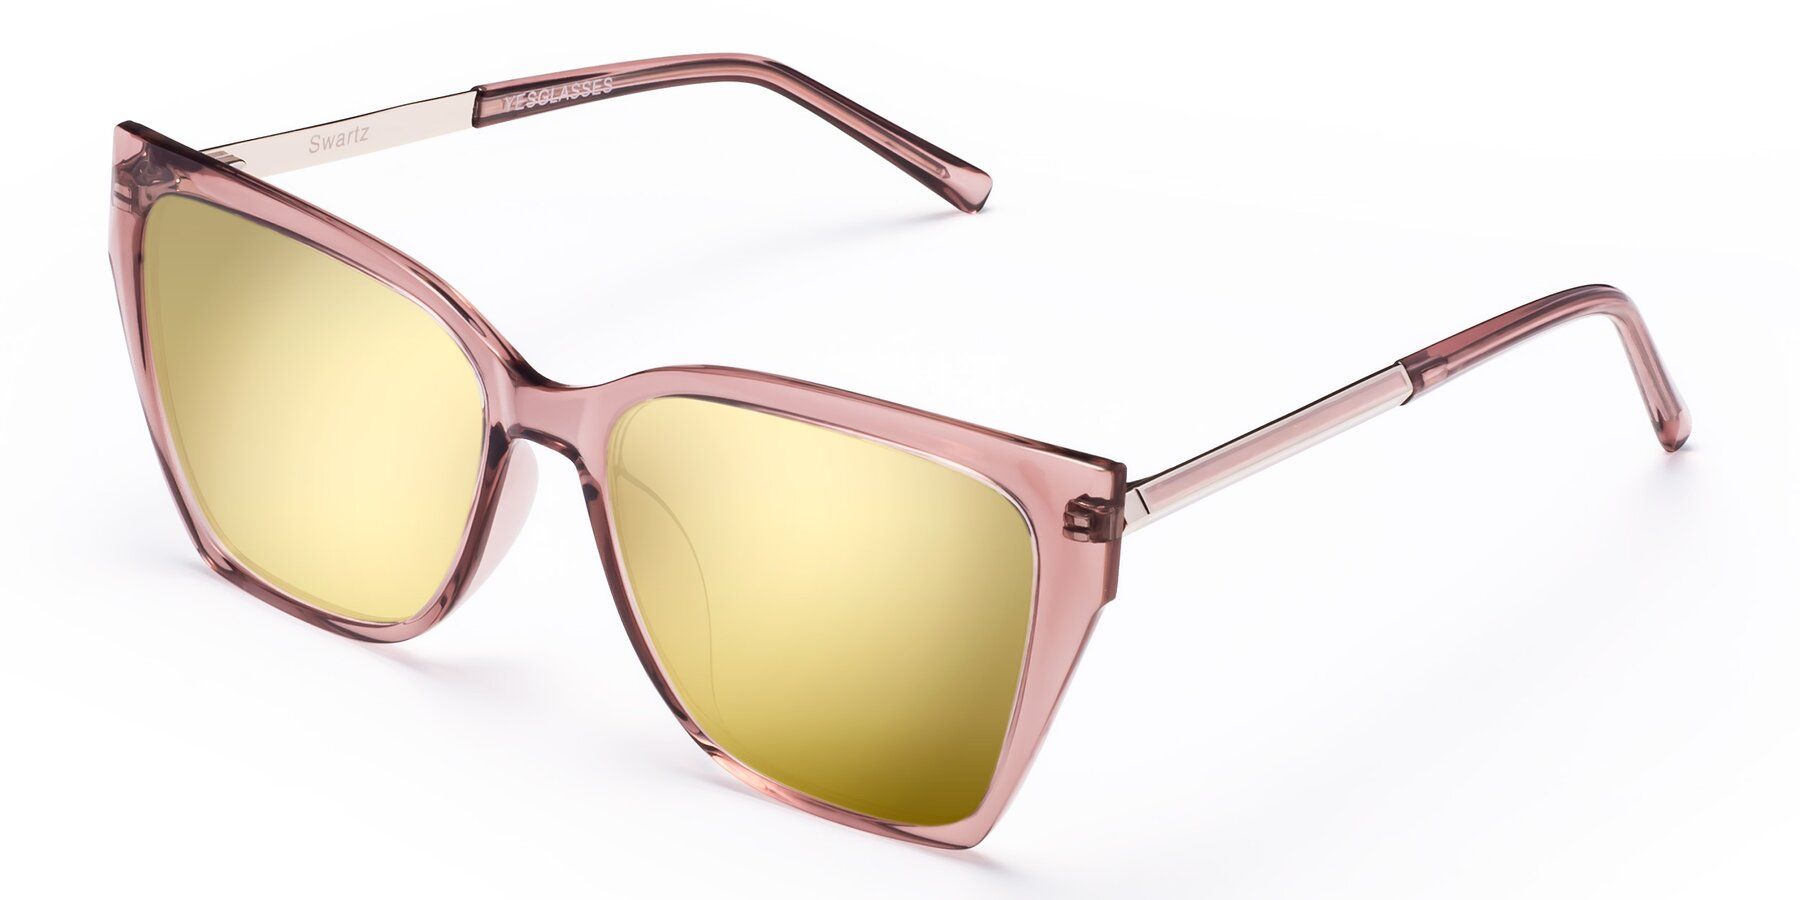 Angle of Swartz in Grape with Gold Mirrored Lenses